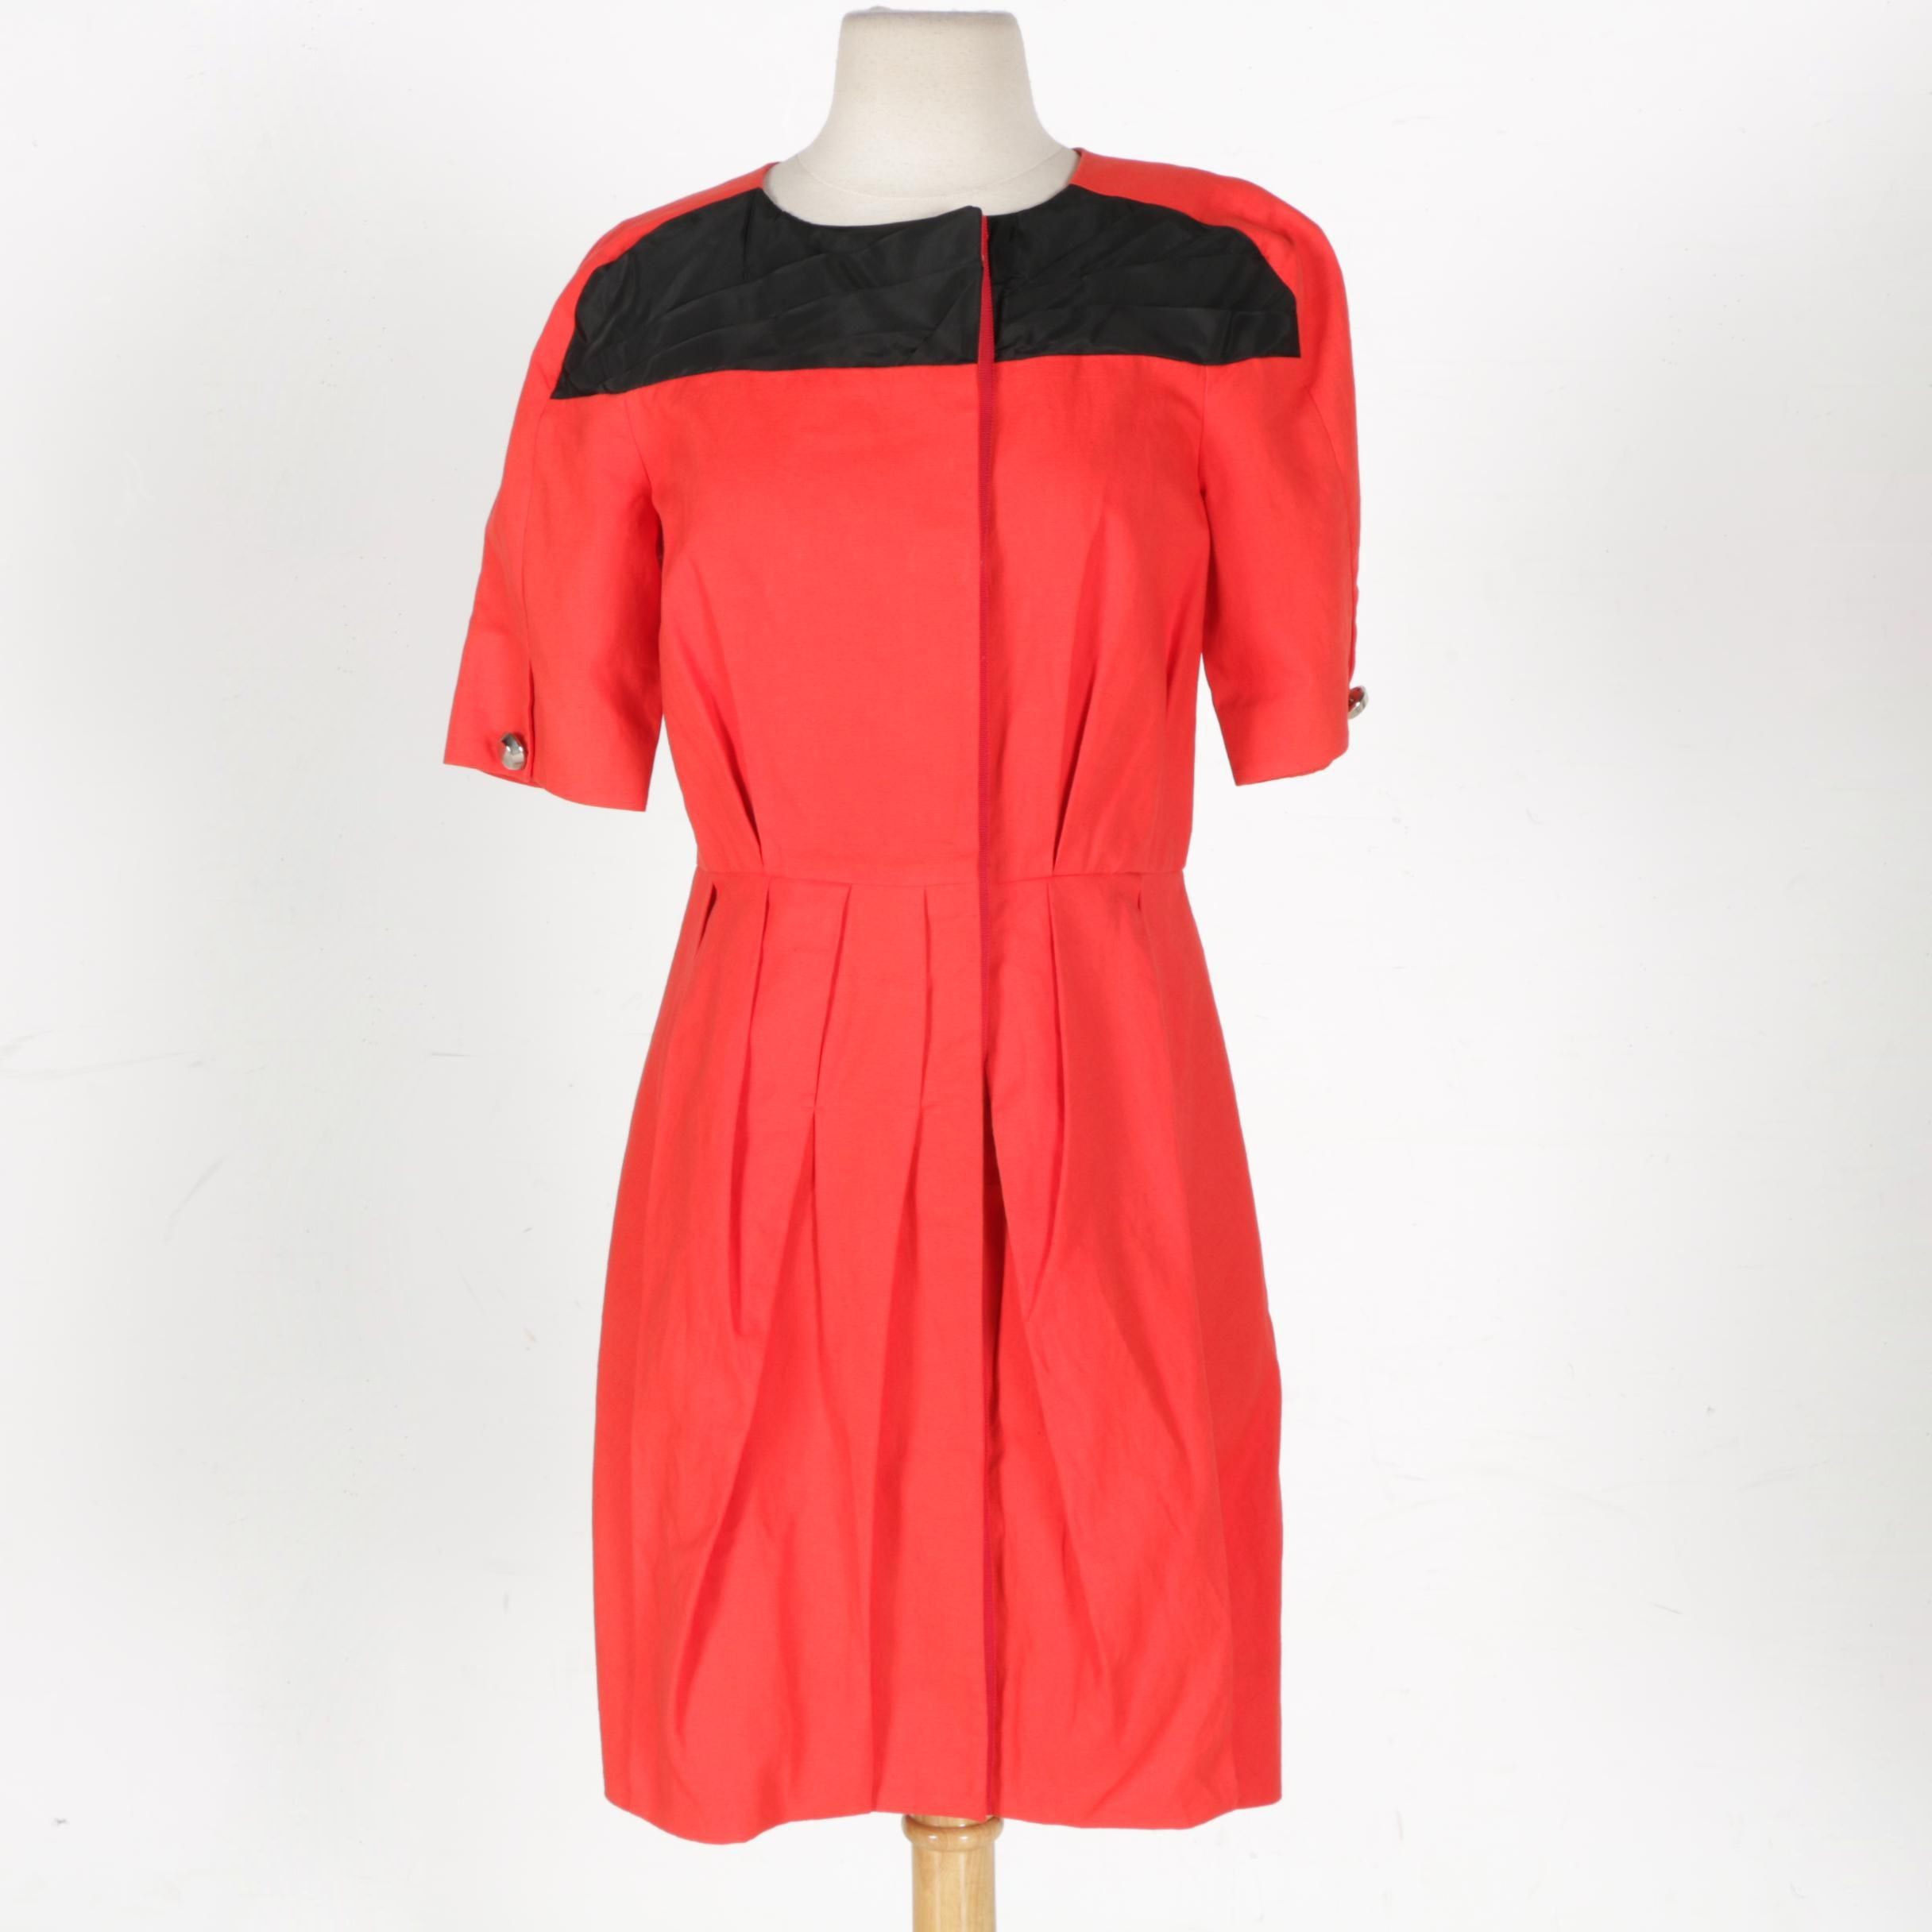 Rachel Roy Red and Black Dress